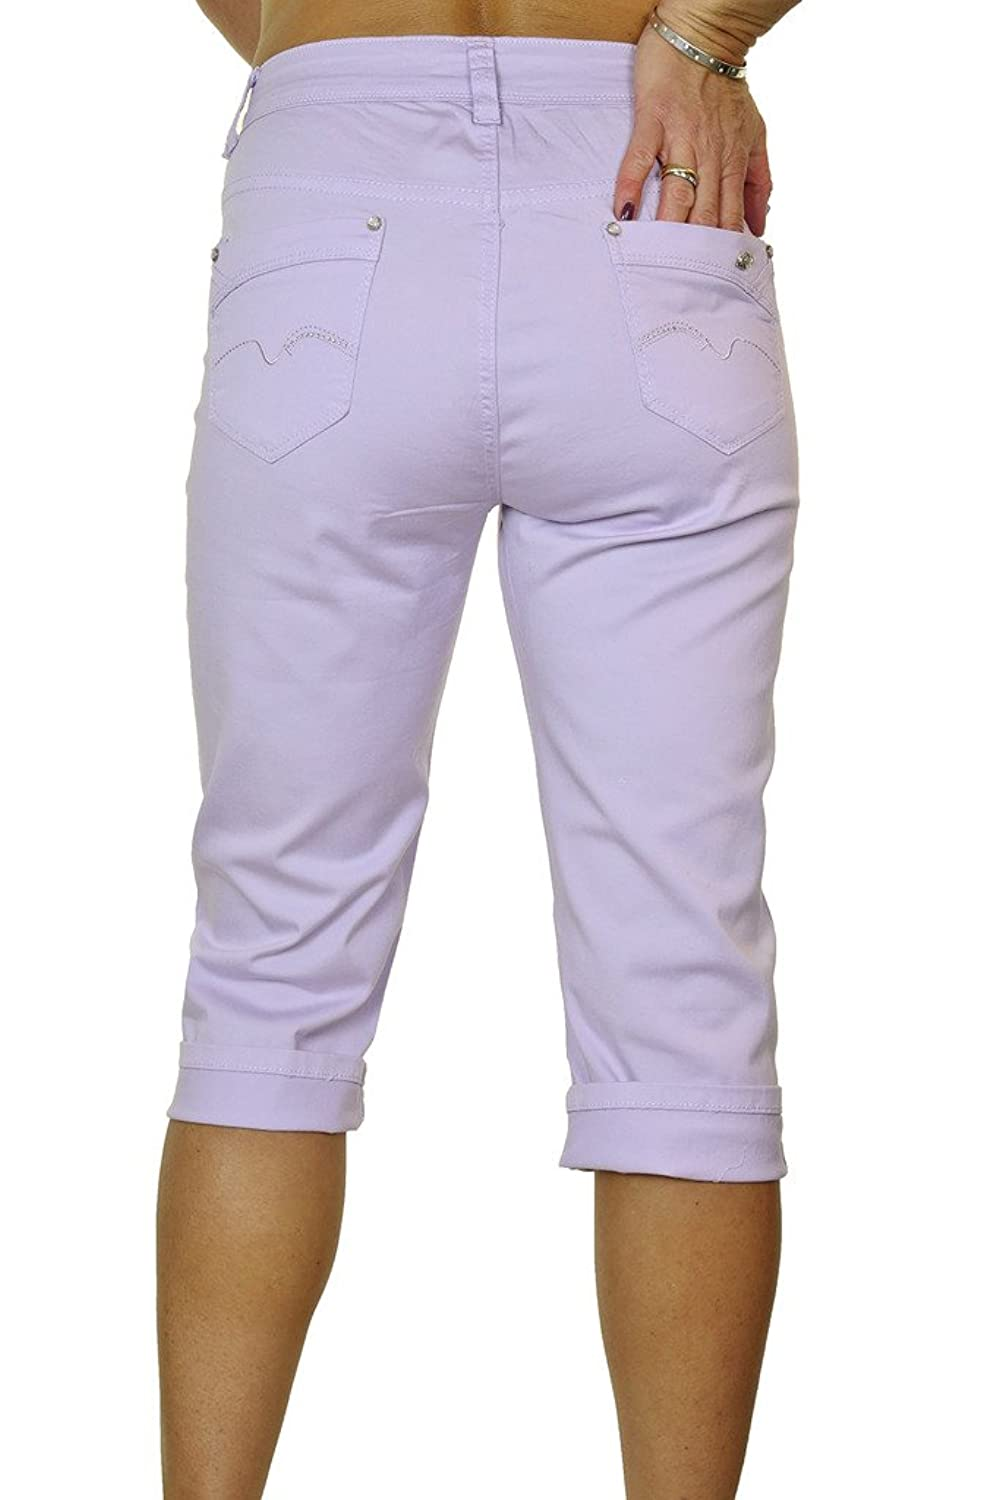 (1442-3) Plus Size Stretch 3/4 Cropped Capri Jeans Light Purple